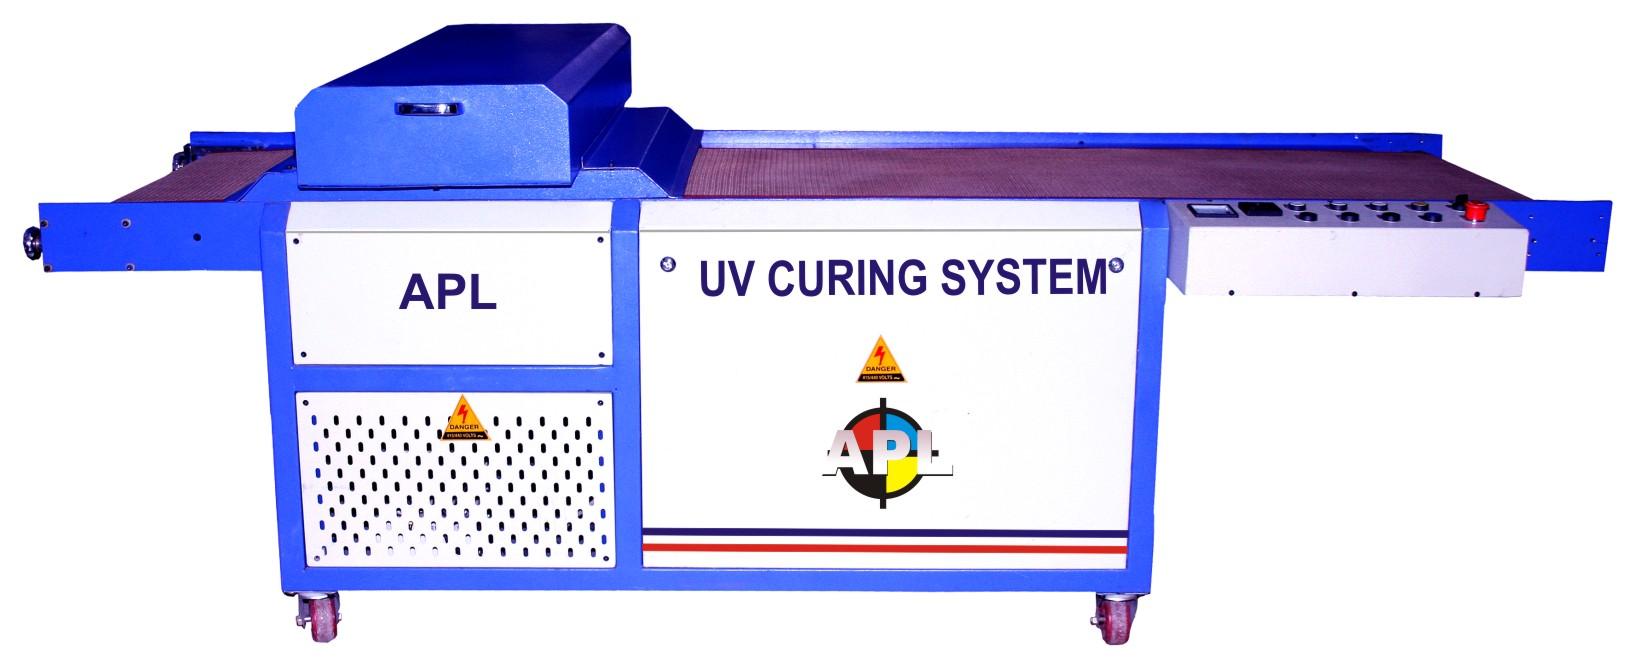 printing machinery india products manufacturers suppliers and exporters manufacturer companies